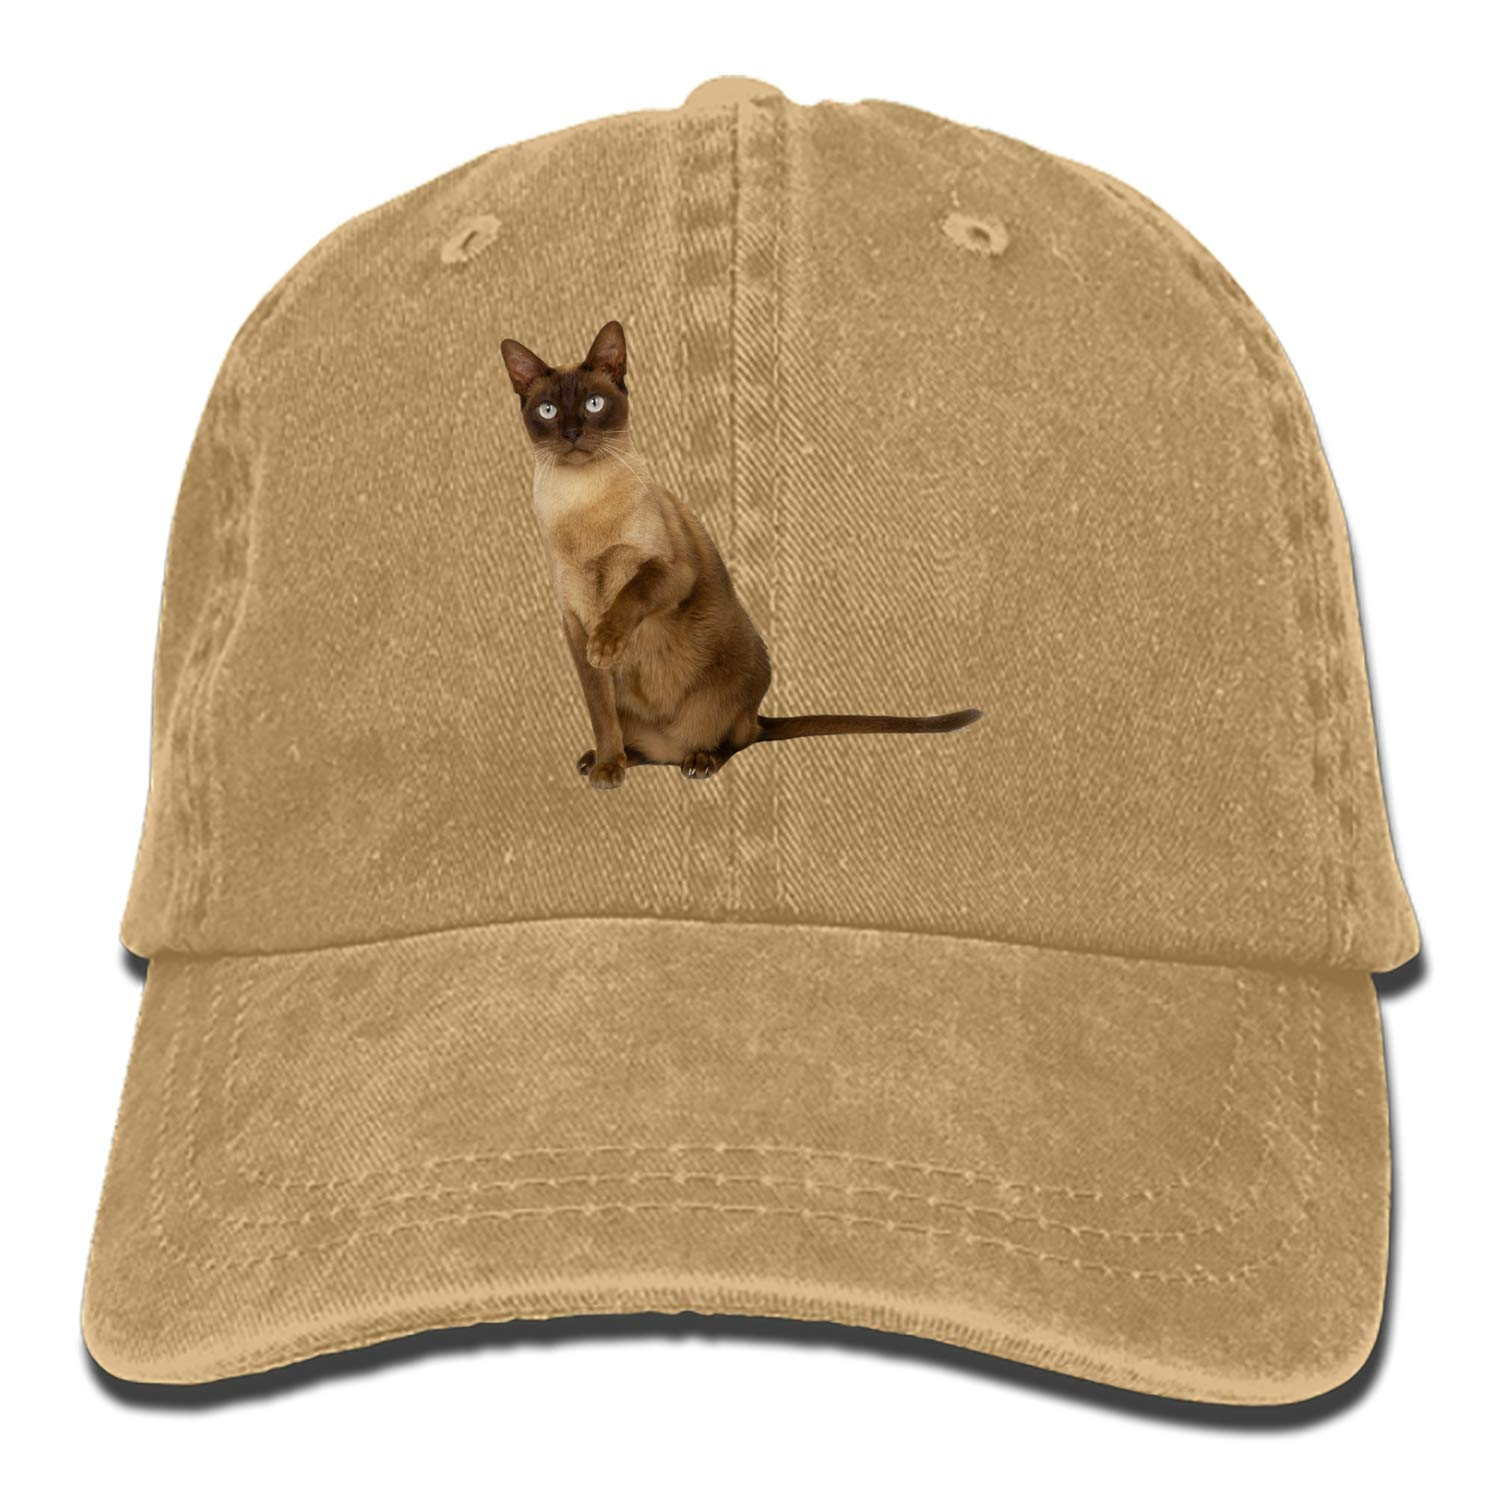 The Siamese Cats Adult Denim Dad Solid Baseball Cap Hat